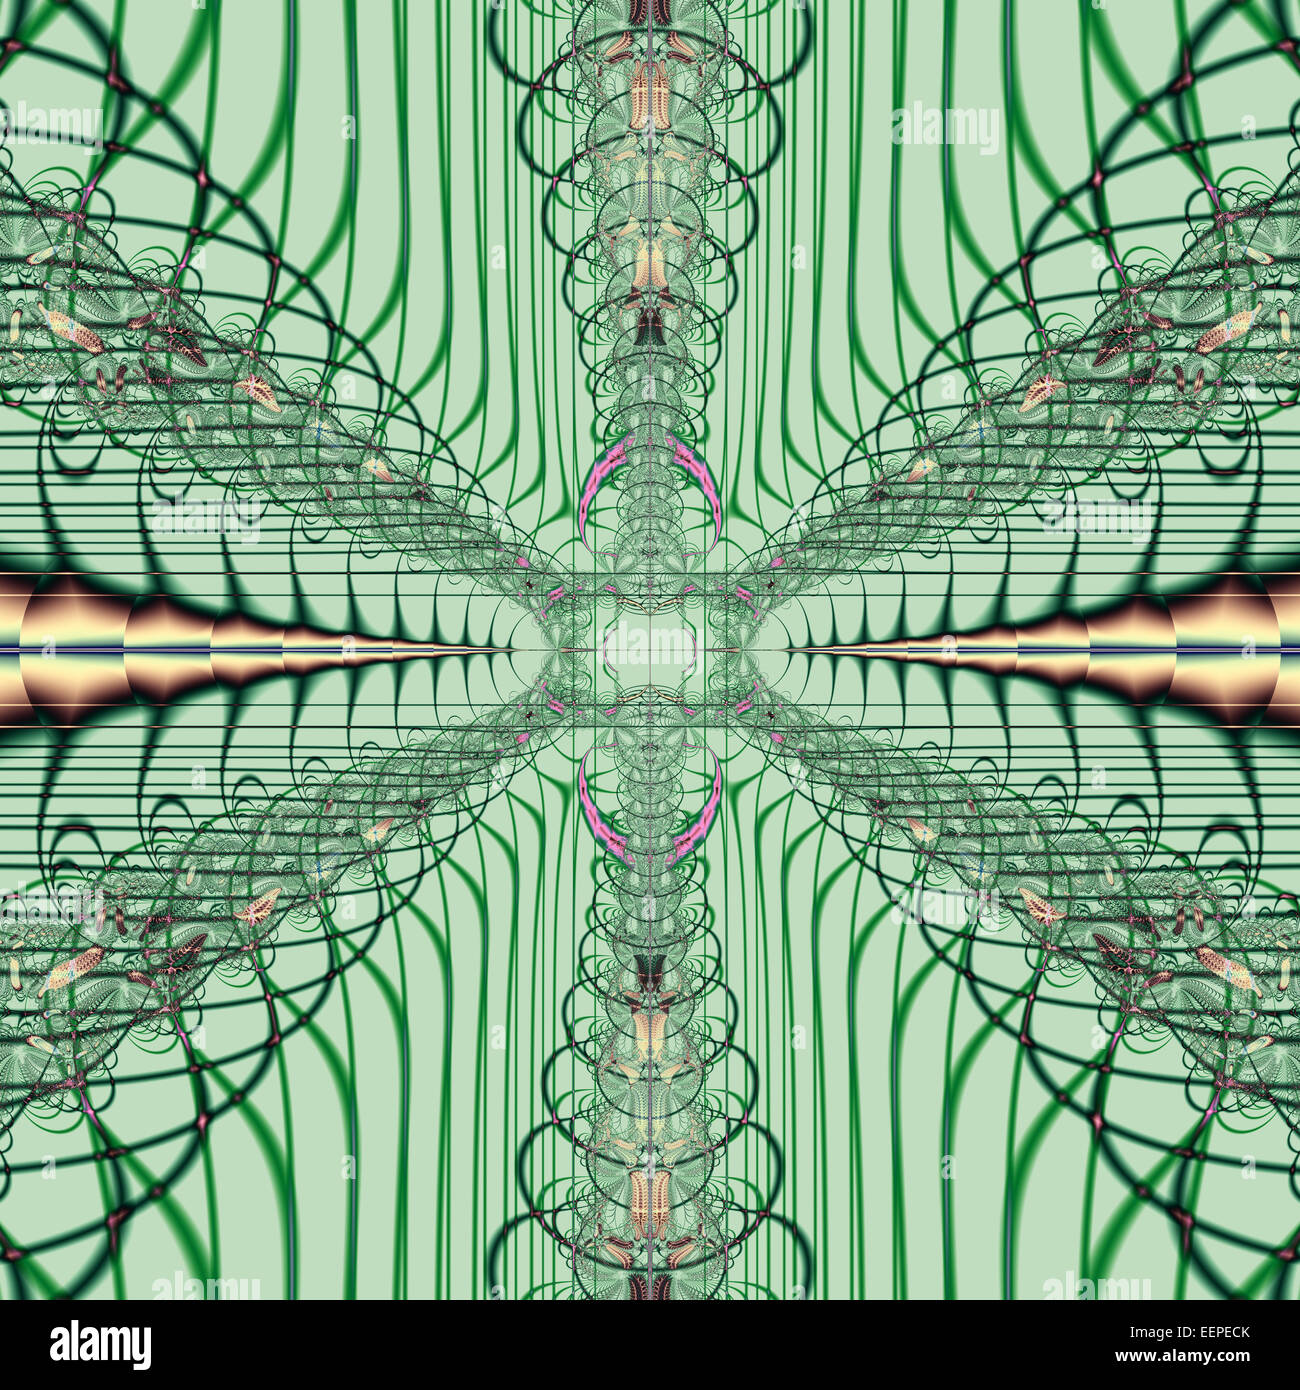 Digitally generated abstract pattern - Stock Image